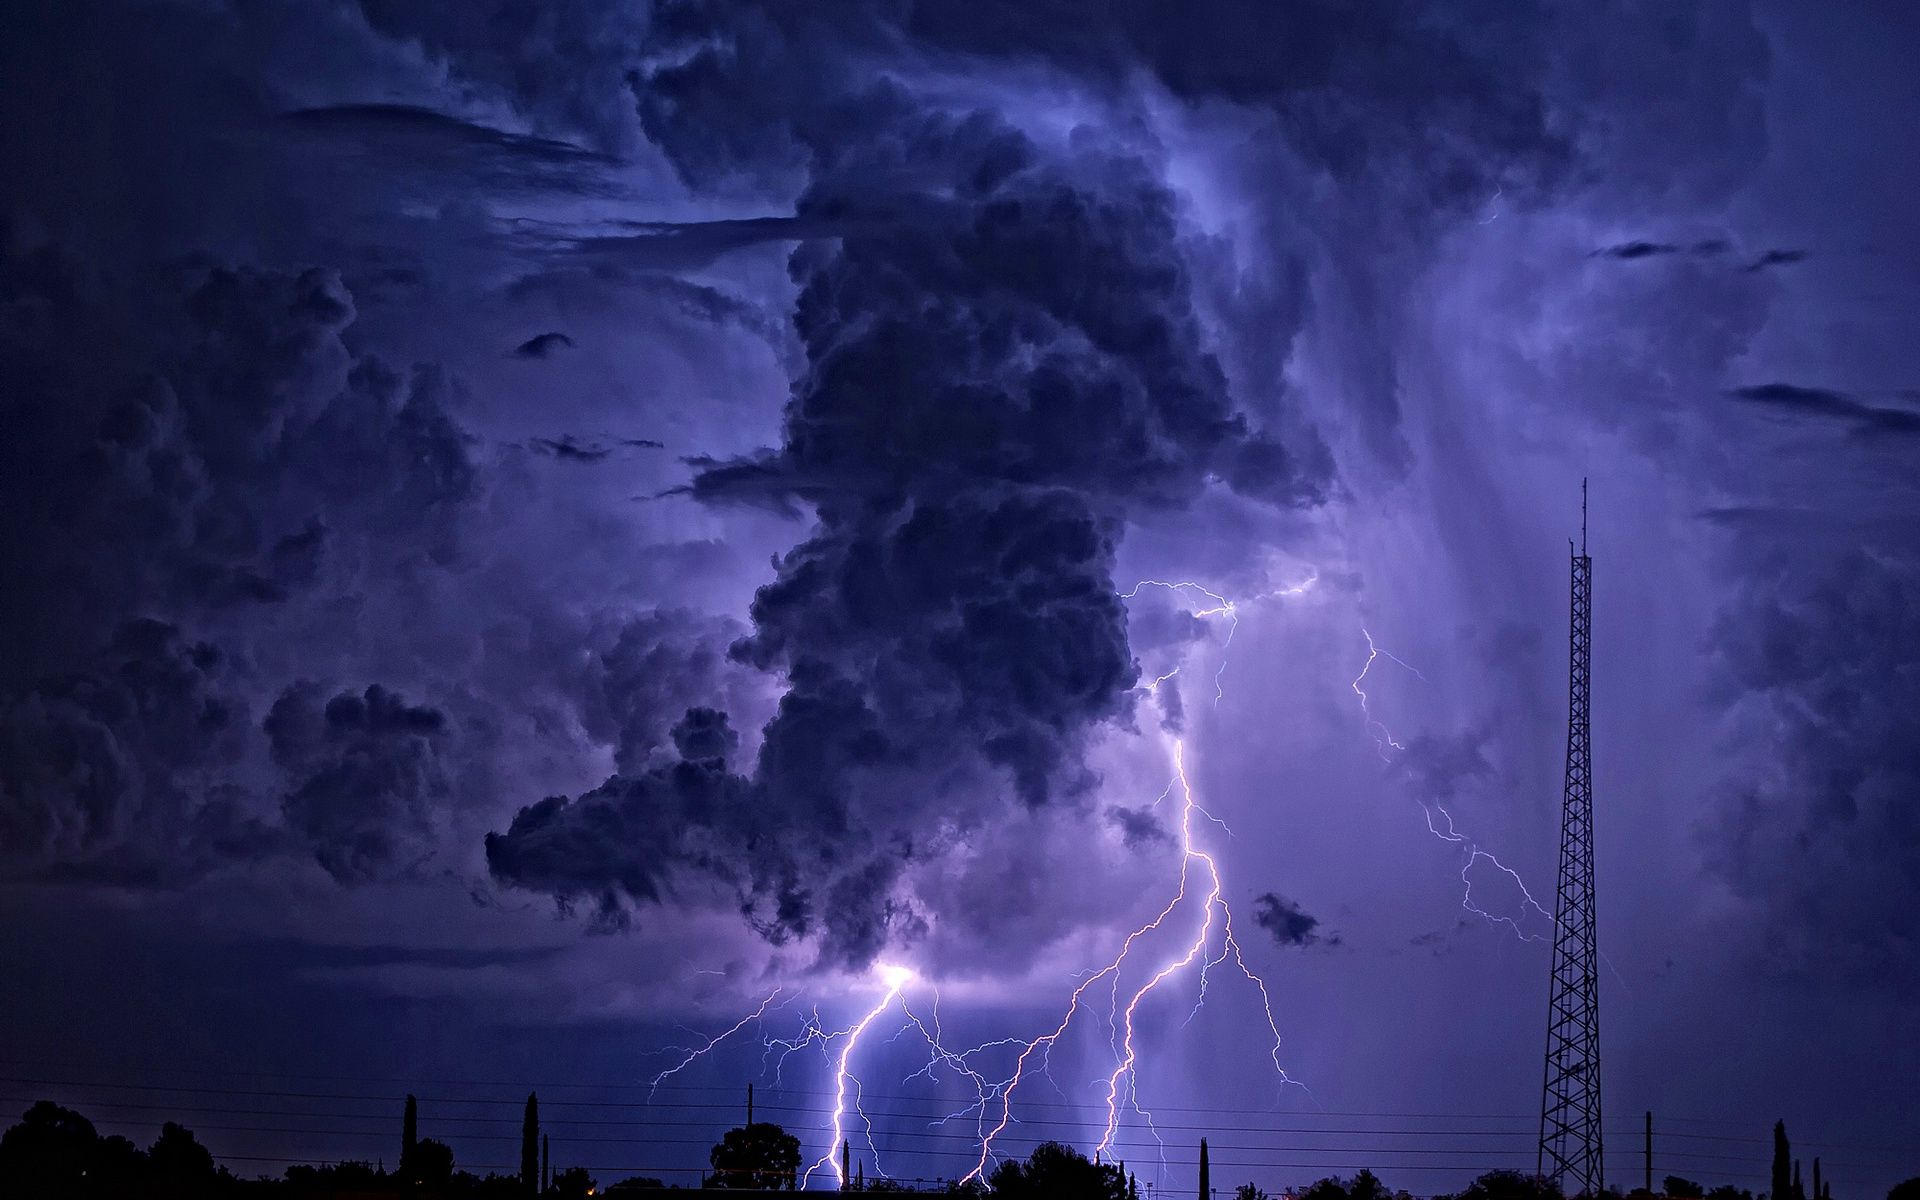 Best 44+ Thunder and Lightning Wallpapers on HipWallpapers